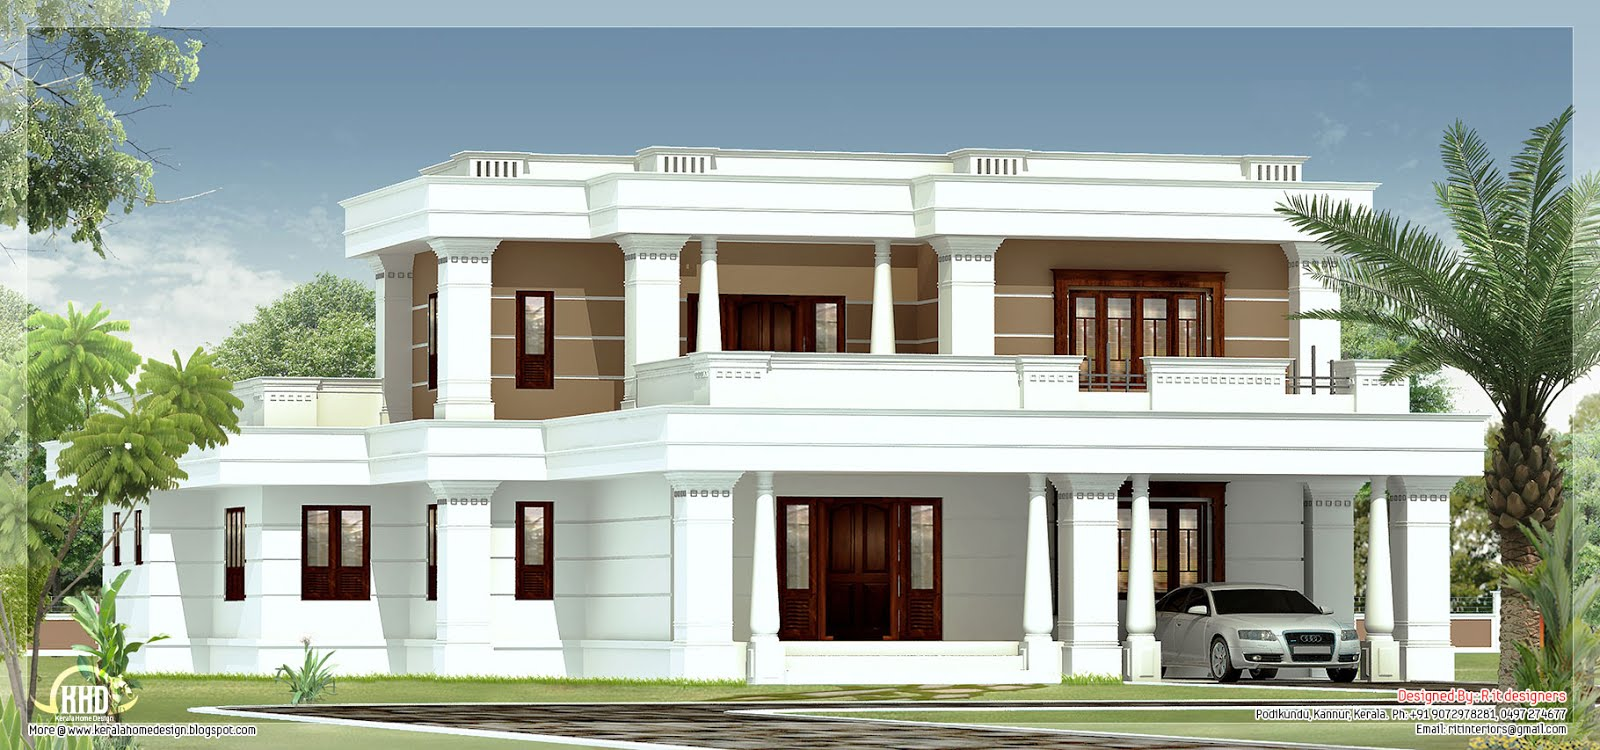 4 Bedroom Flat Roof Villa Kerala House Design Idea